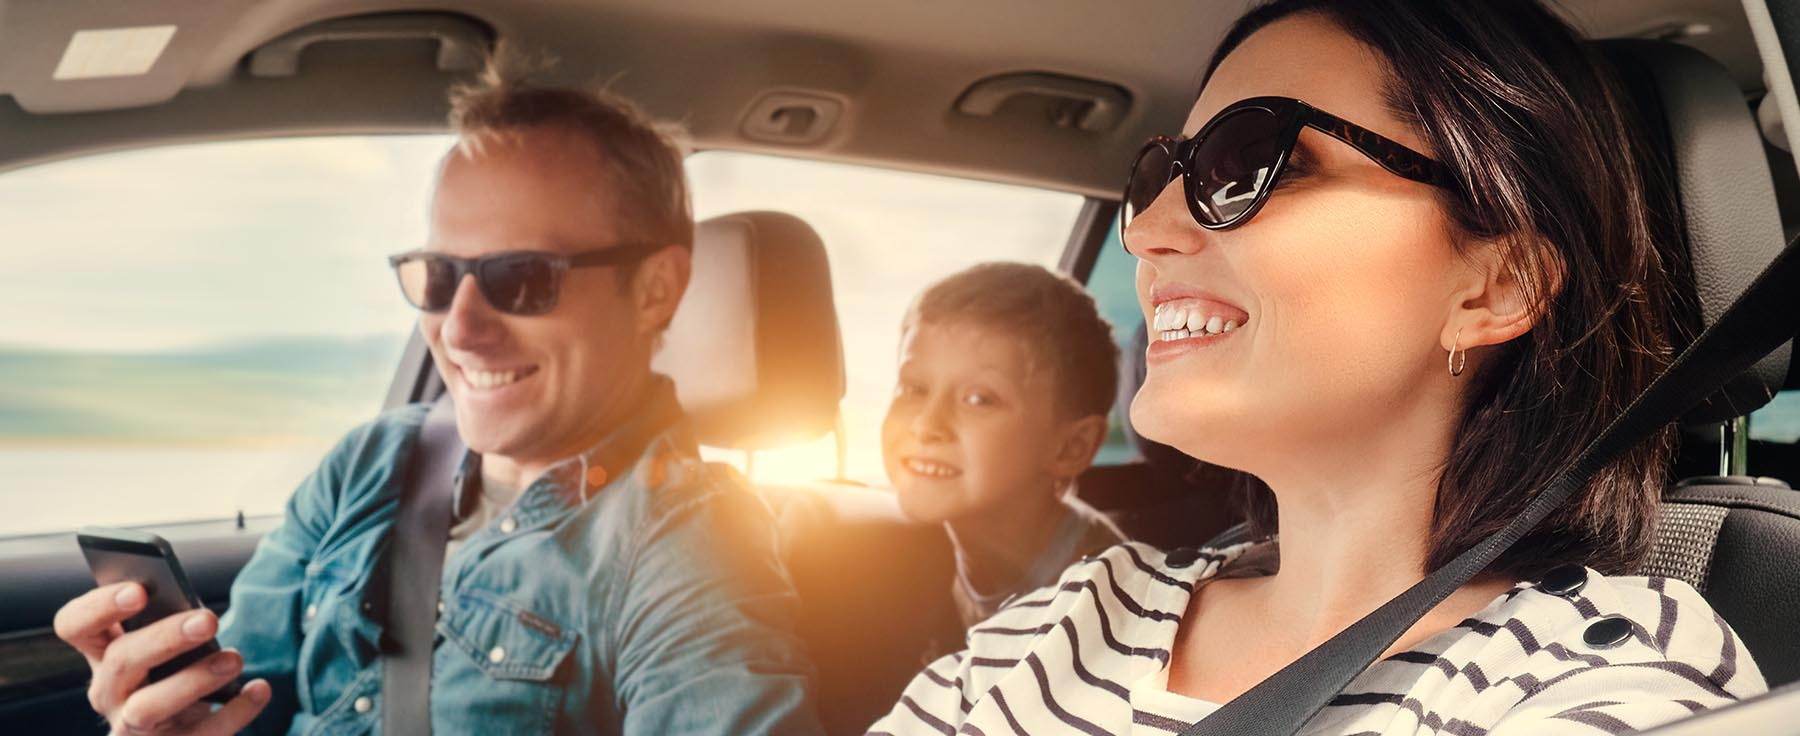 Road Trip with Mum | The Companionist